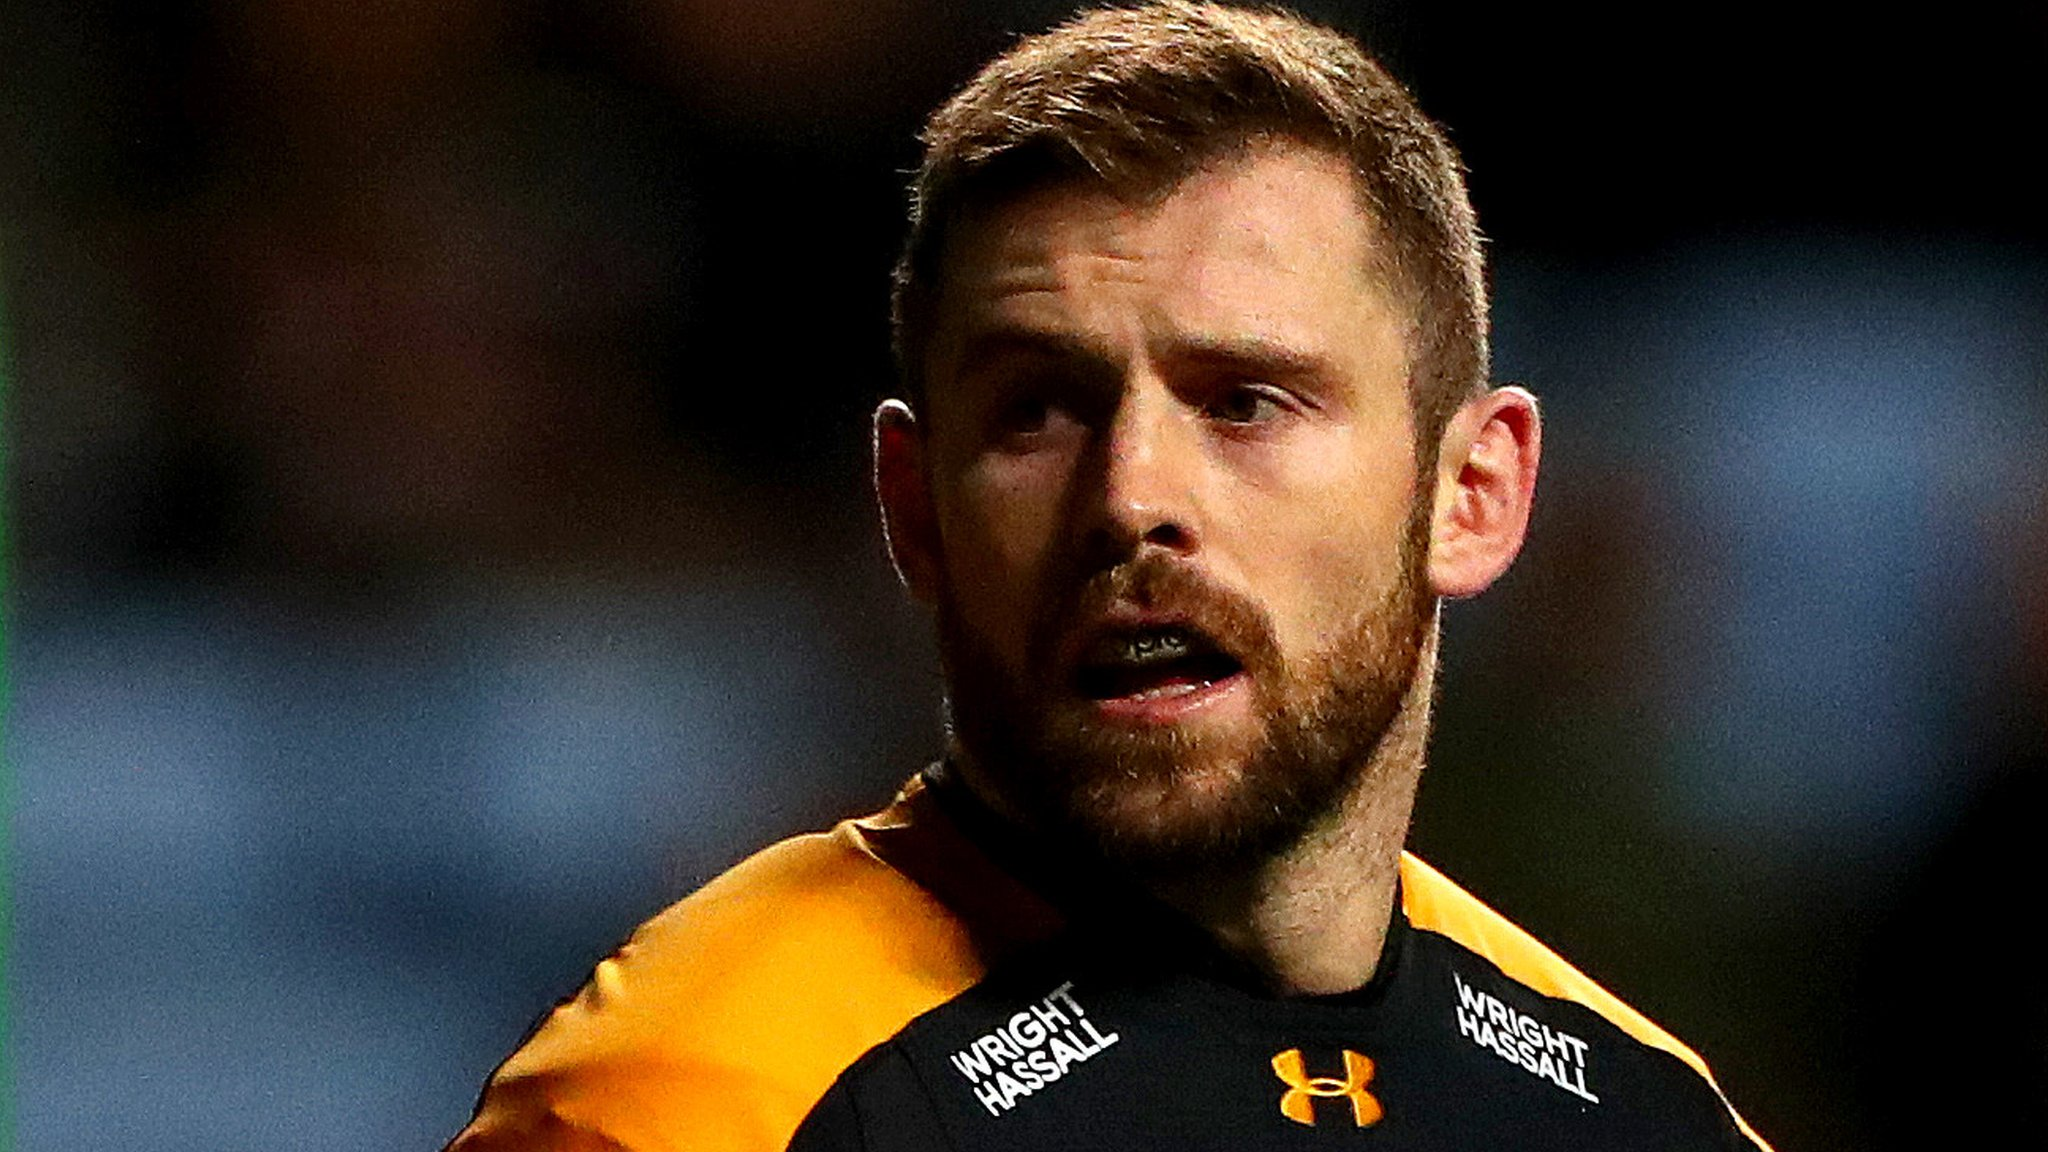 European Champions Cup: Wasps v Leinster